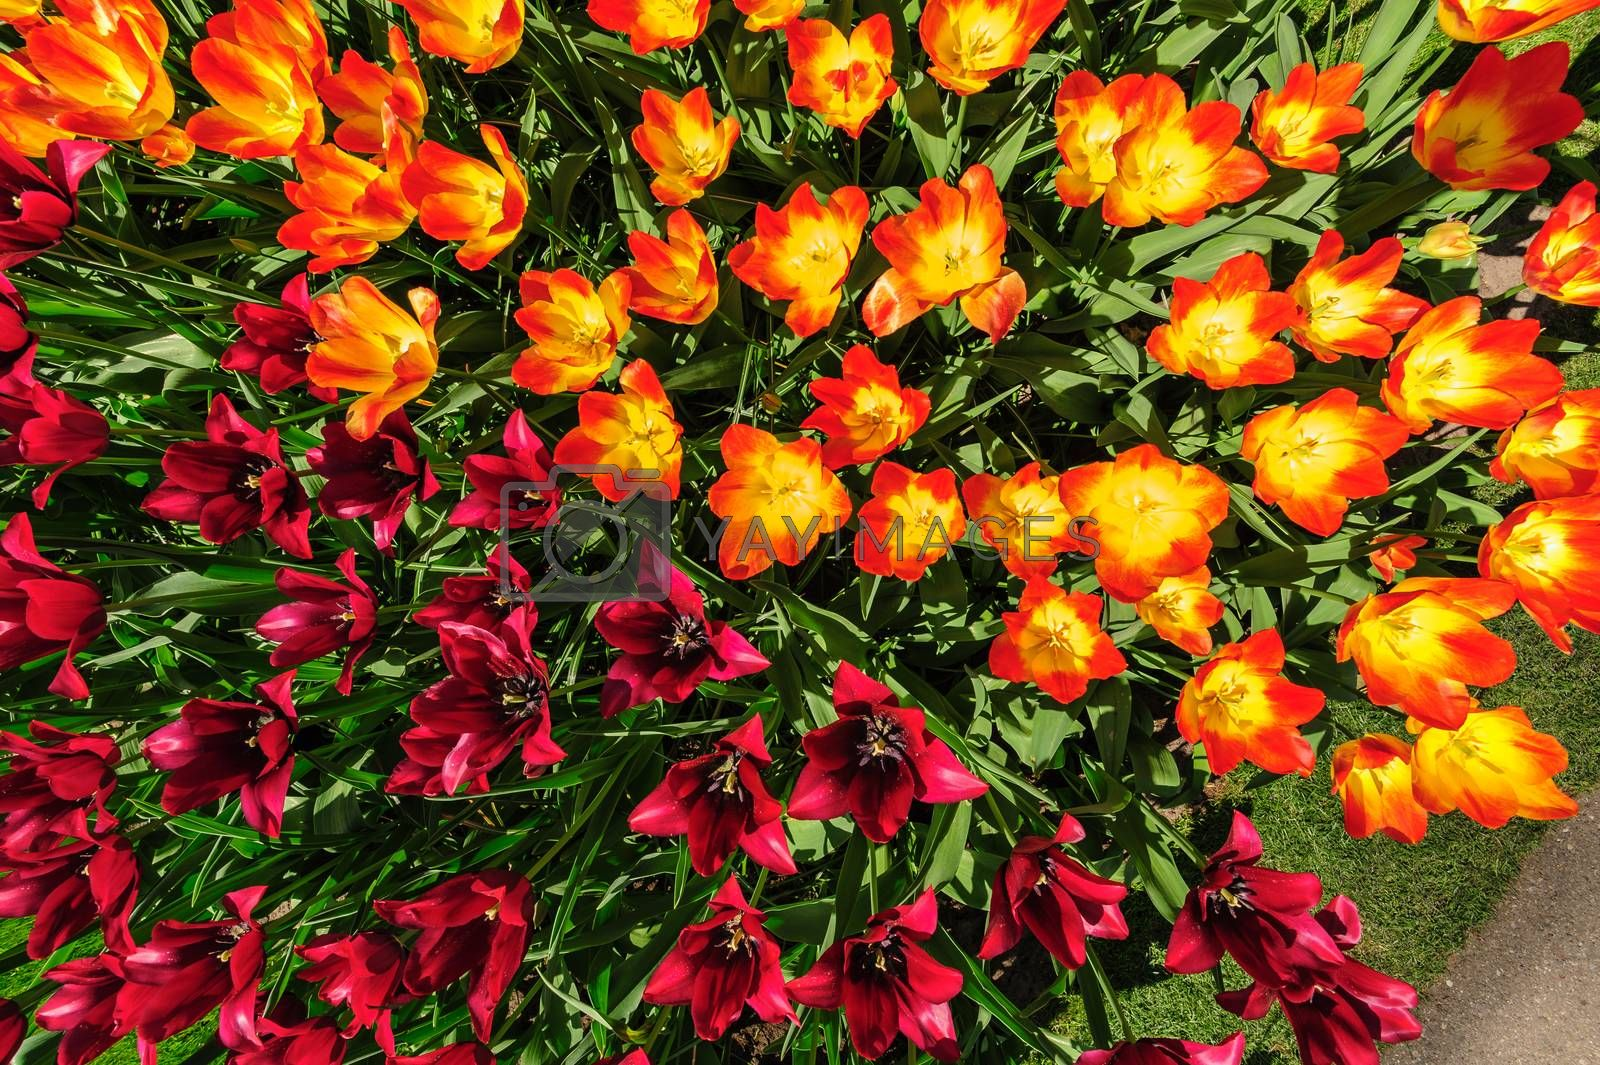 Large multicolored tulips flowerbed in Netherlands, view from above